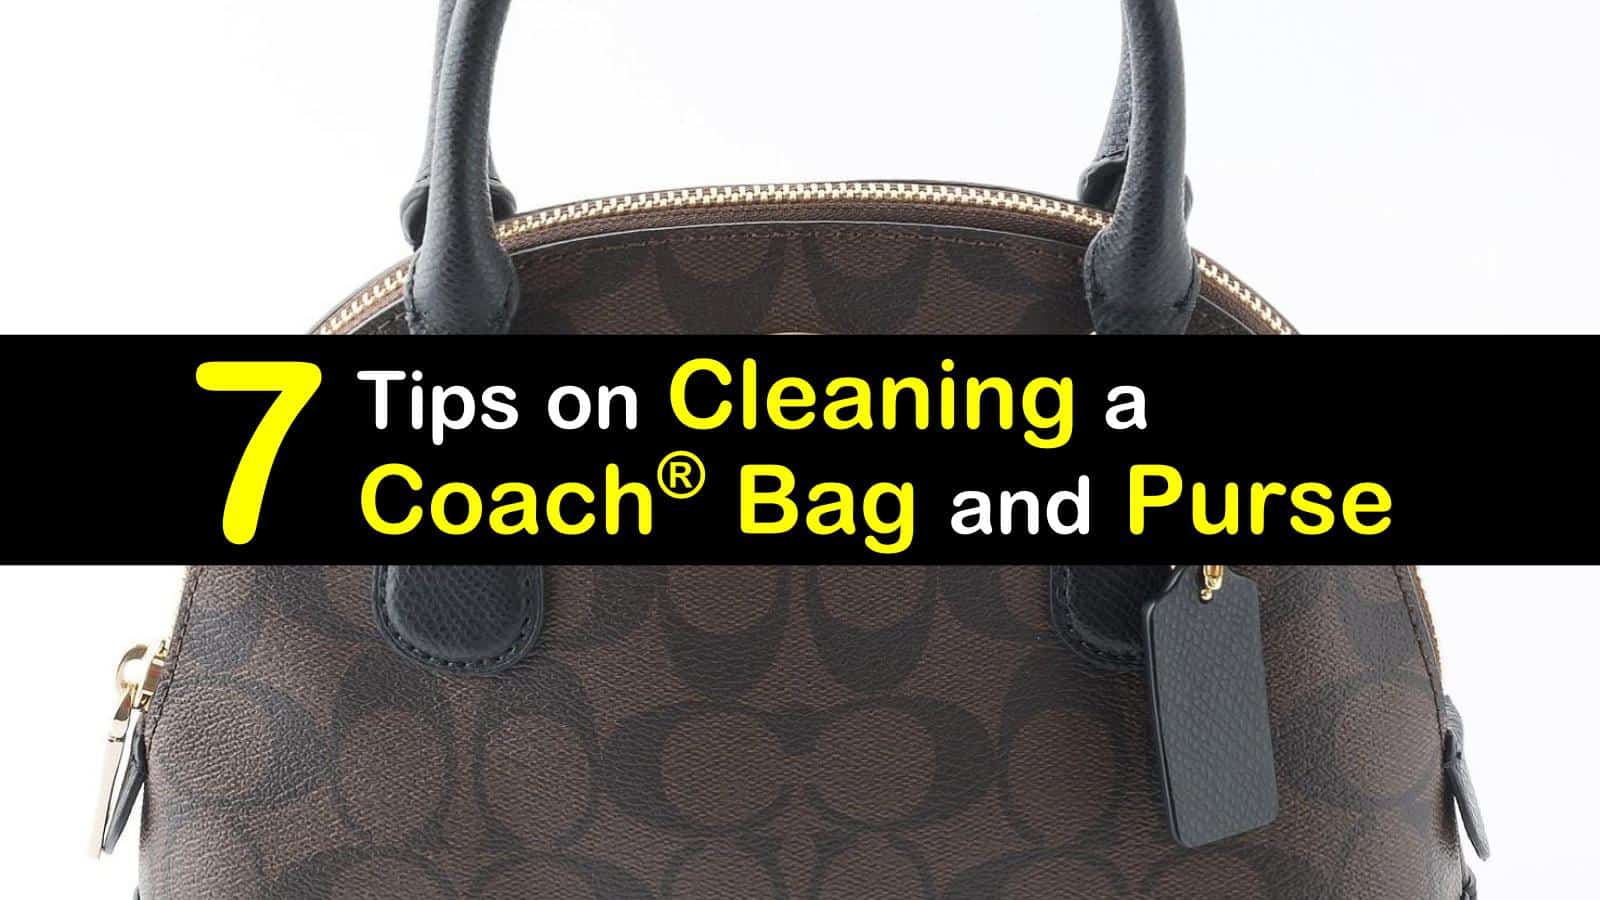 Coach Bag Cleaning Leimg1